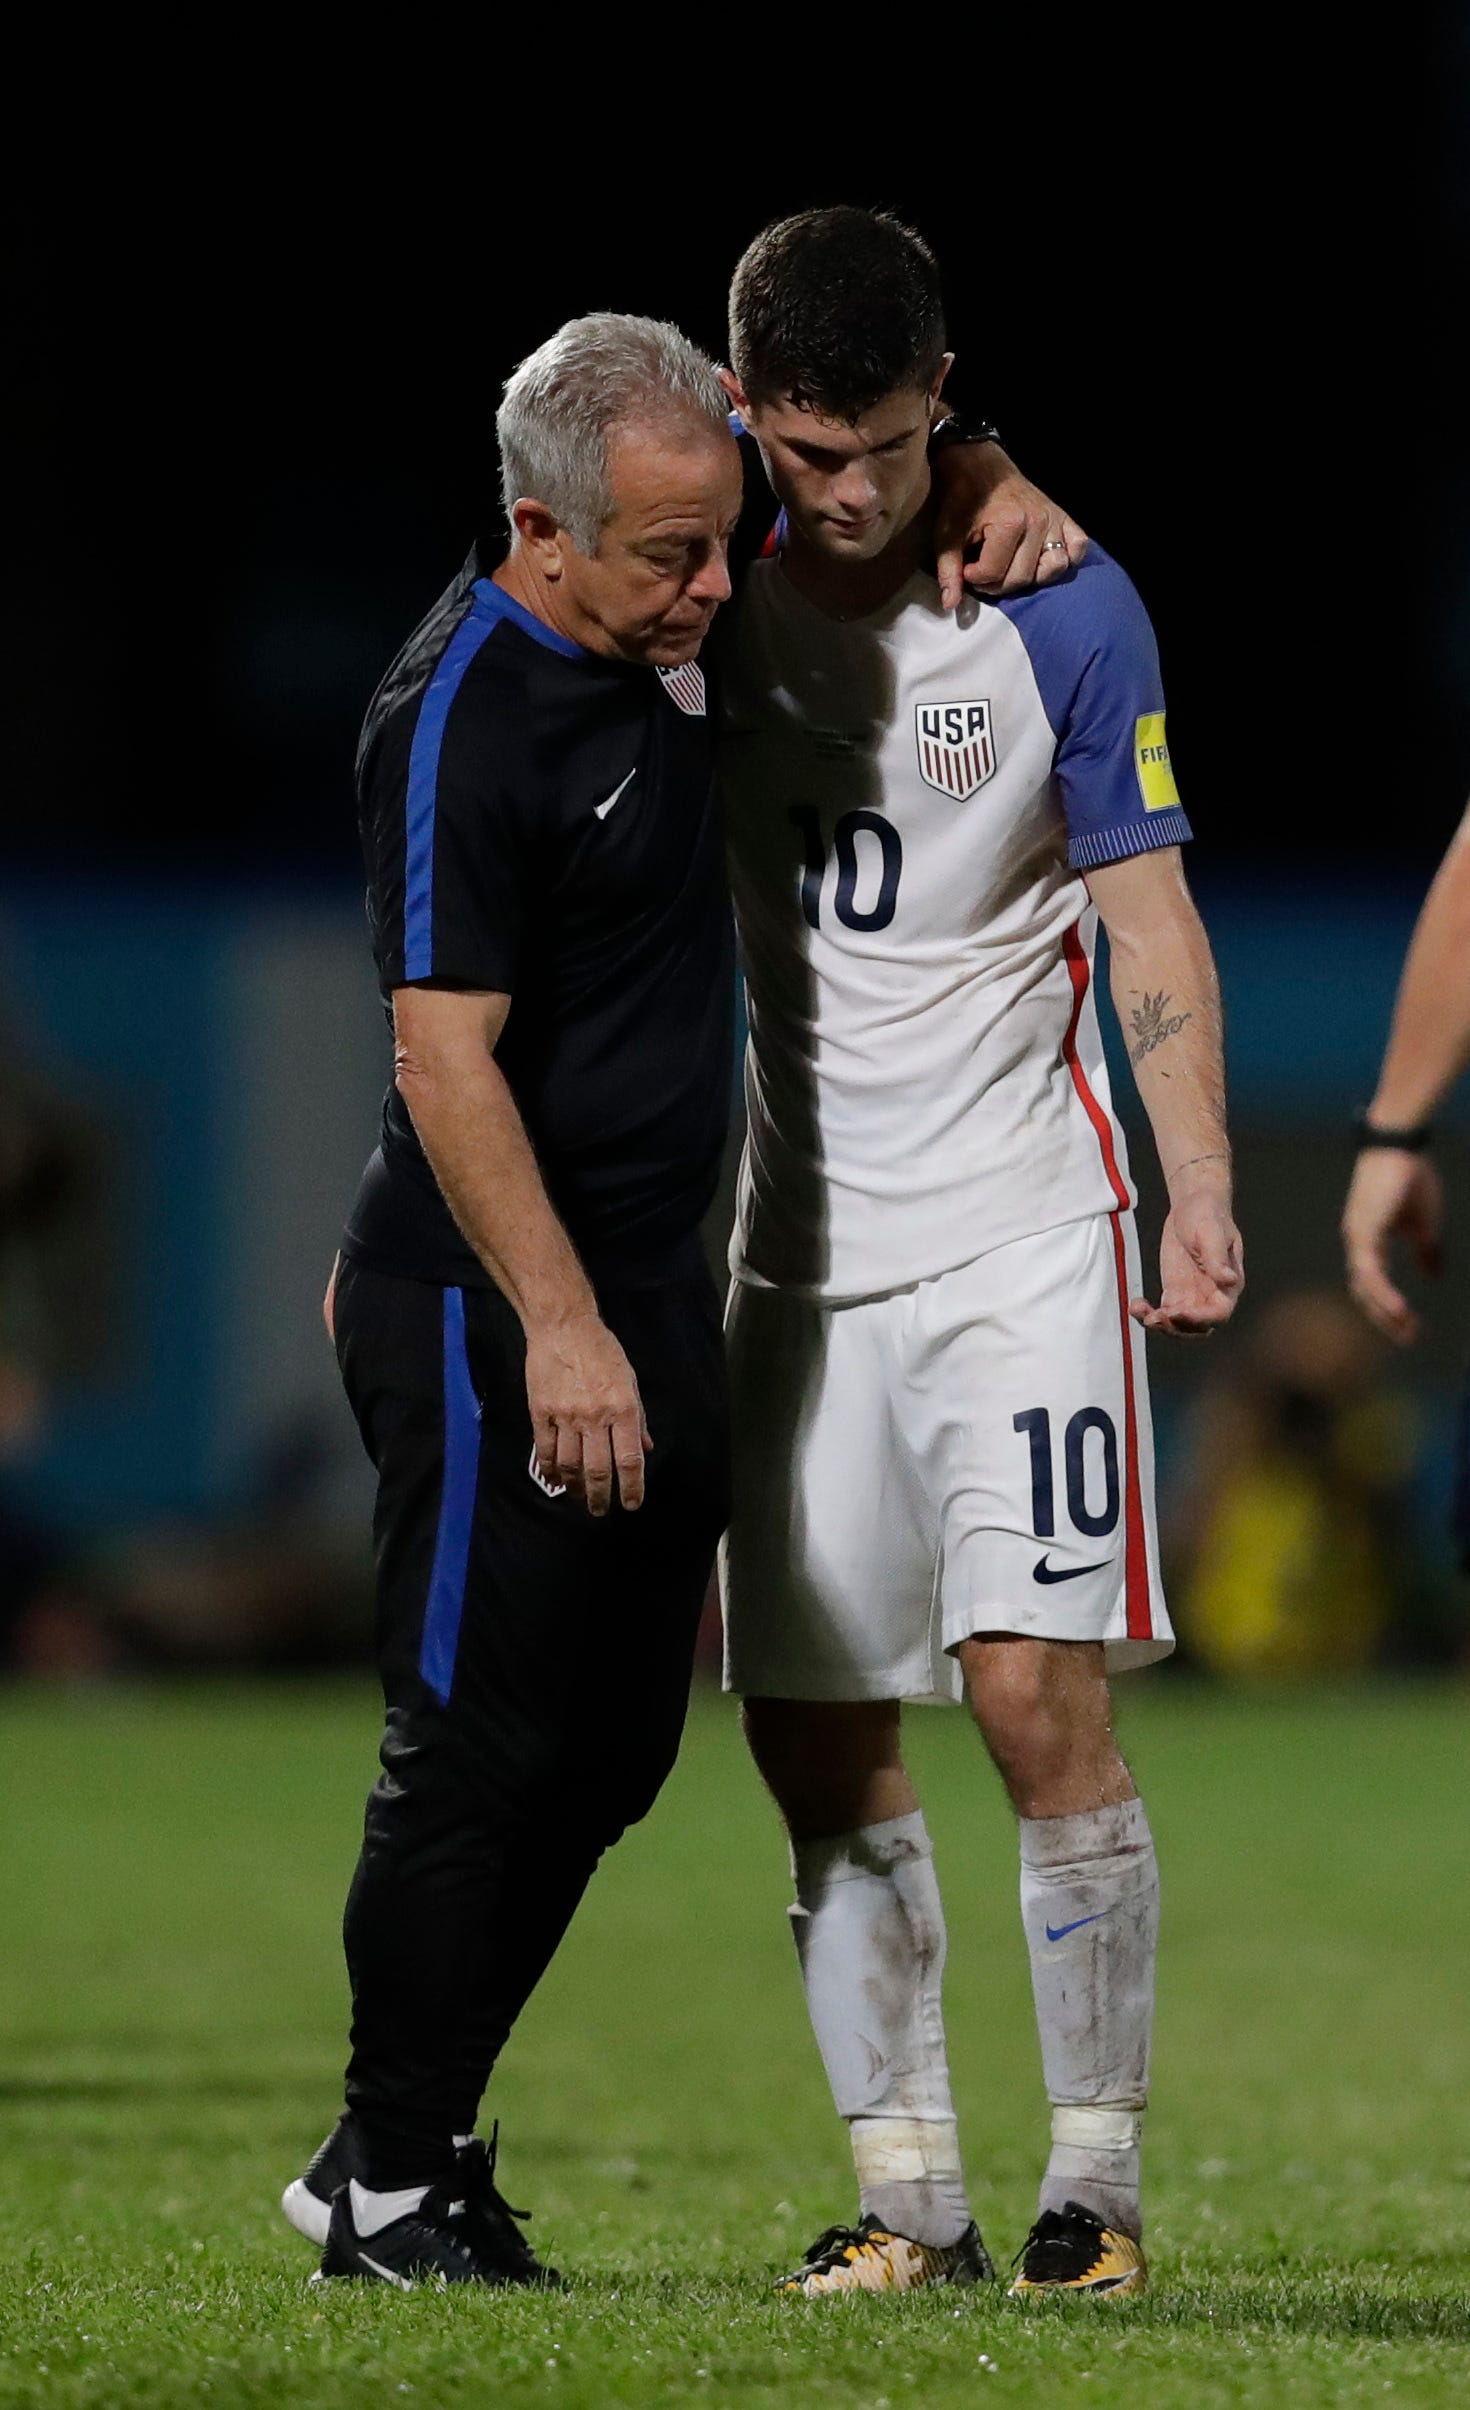 Trinidad and Tobago coach, player call out USMNT: 'They learned their lesson'